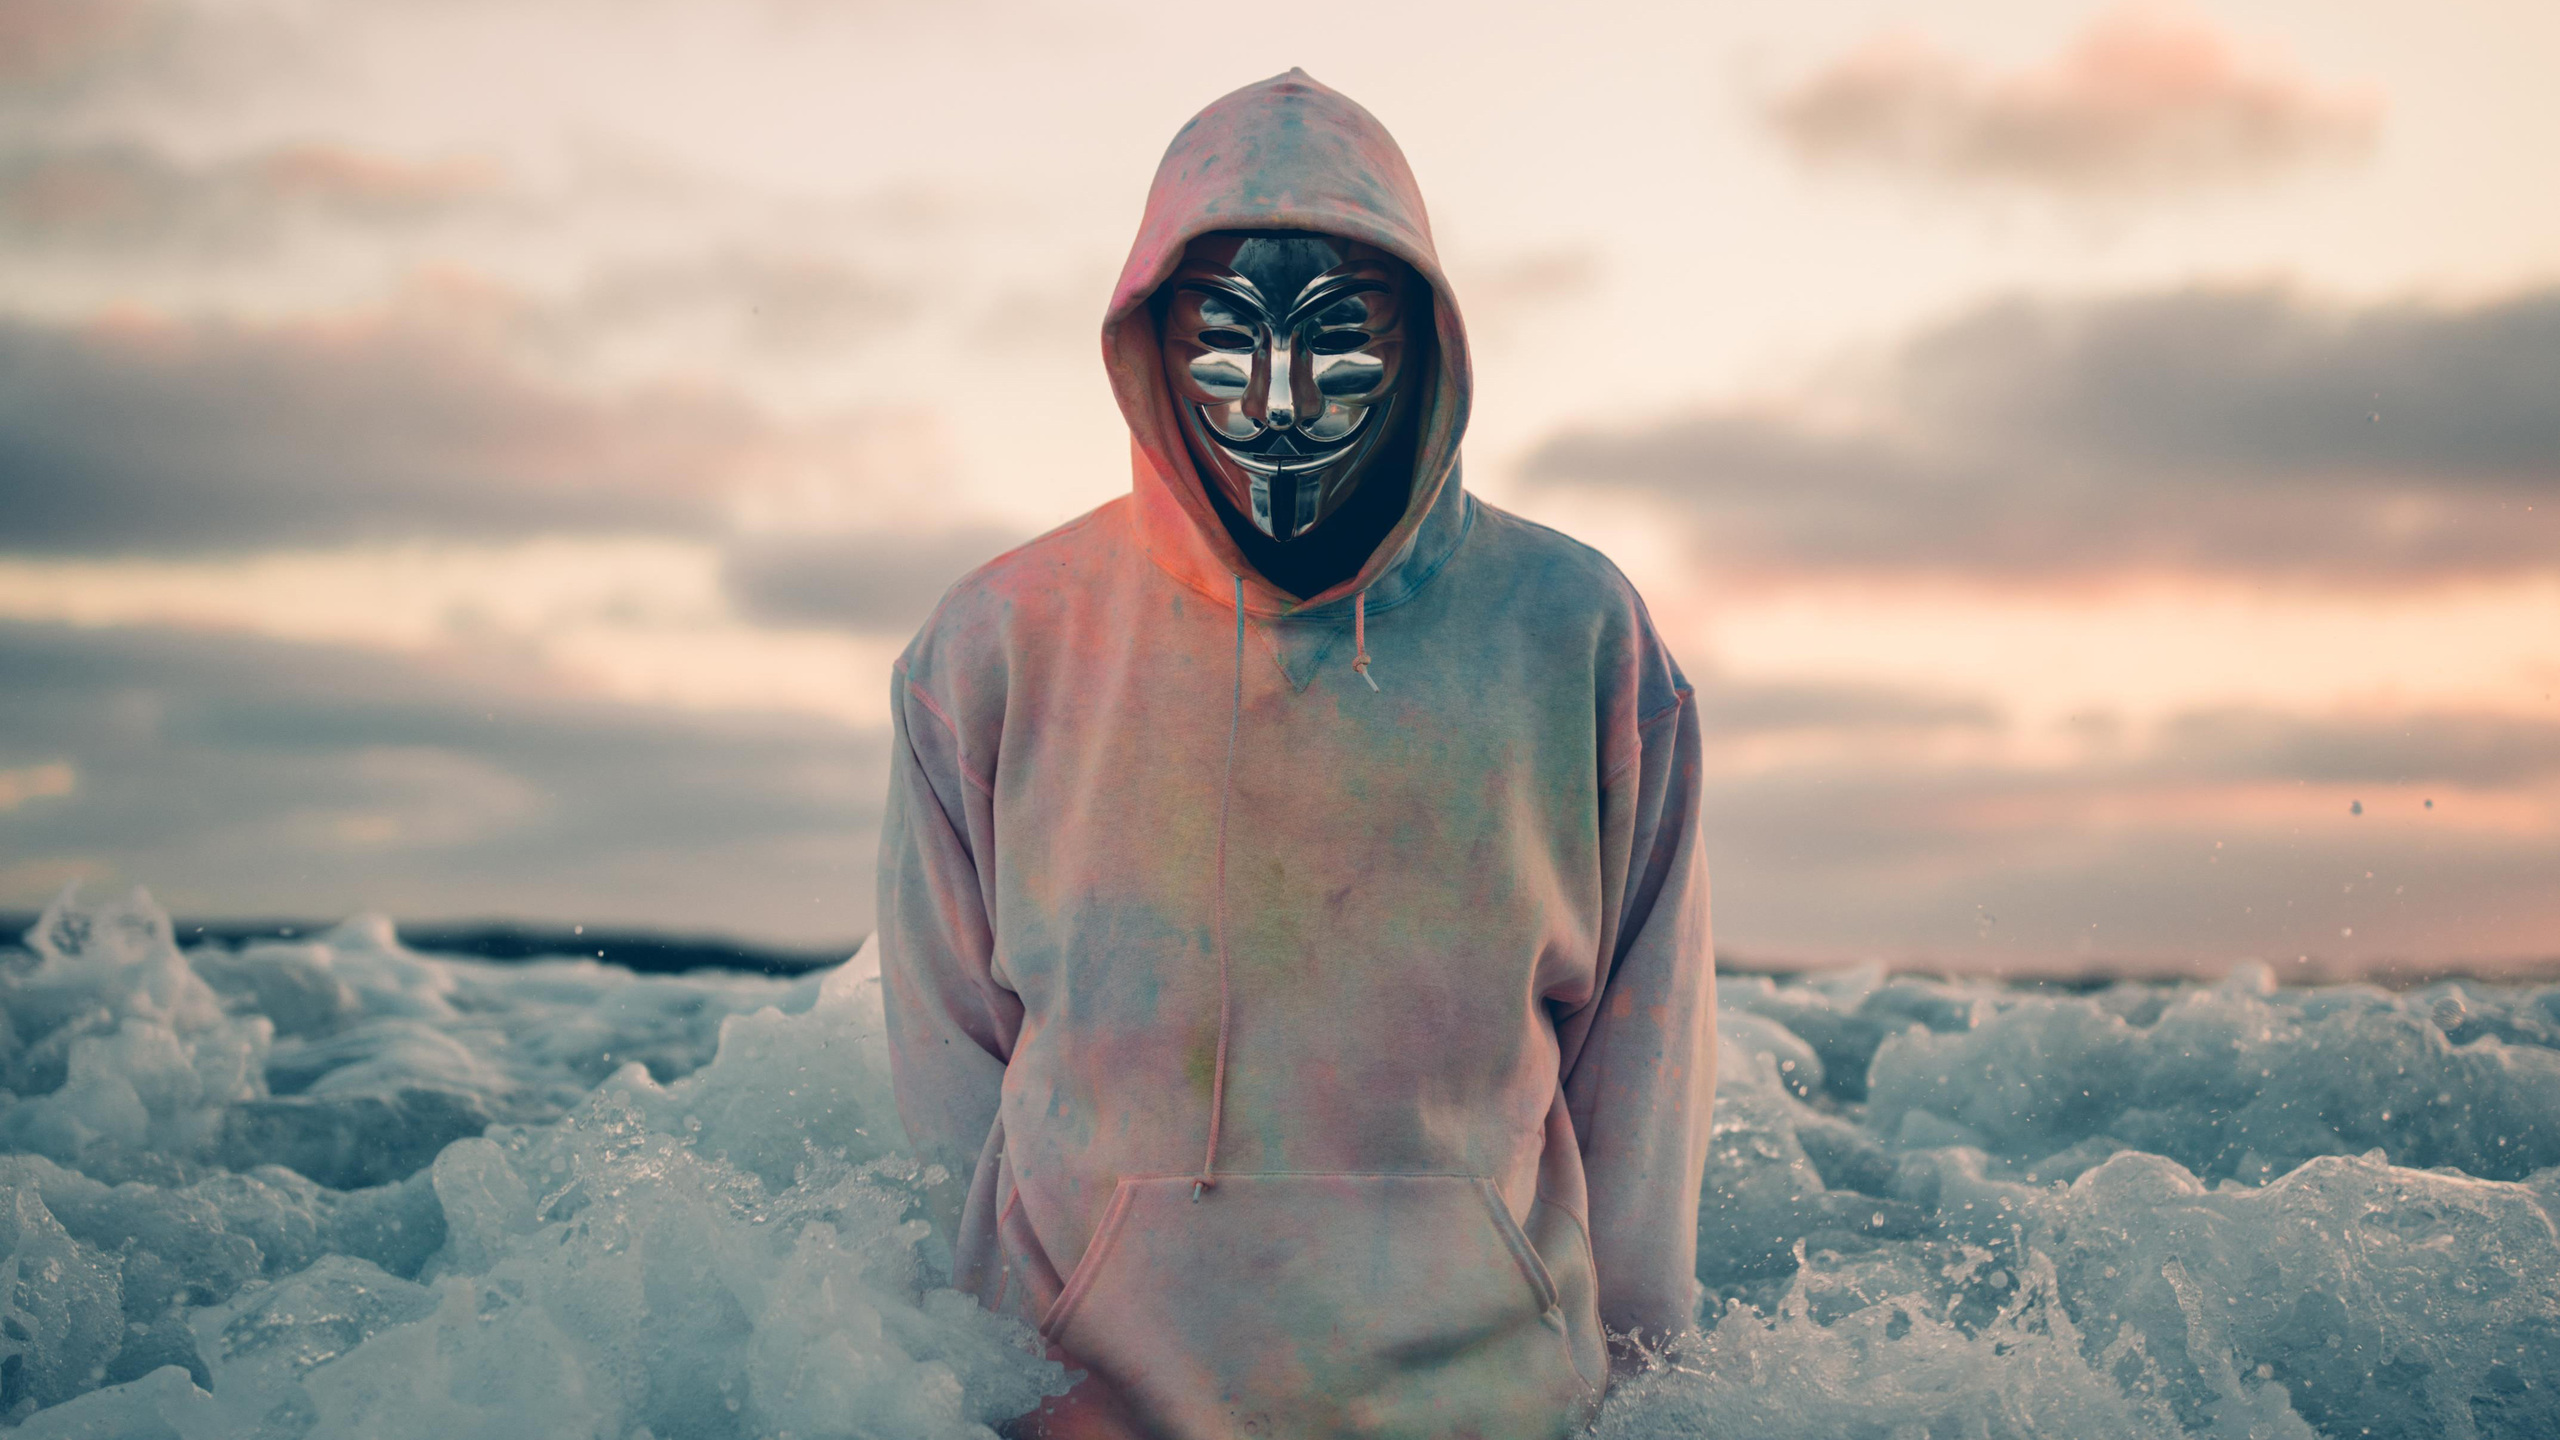 2560x1440 Anonymous 1440P Resolution HD 4k Wallpapers Images